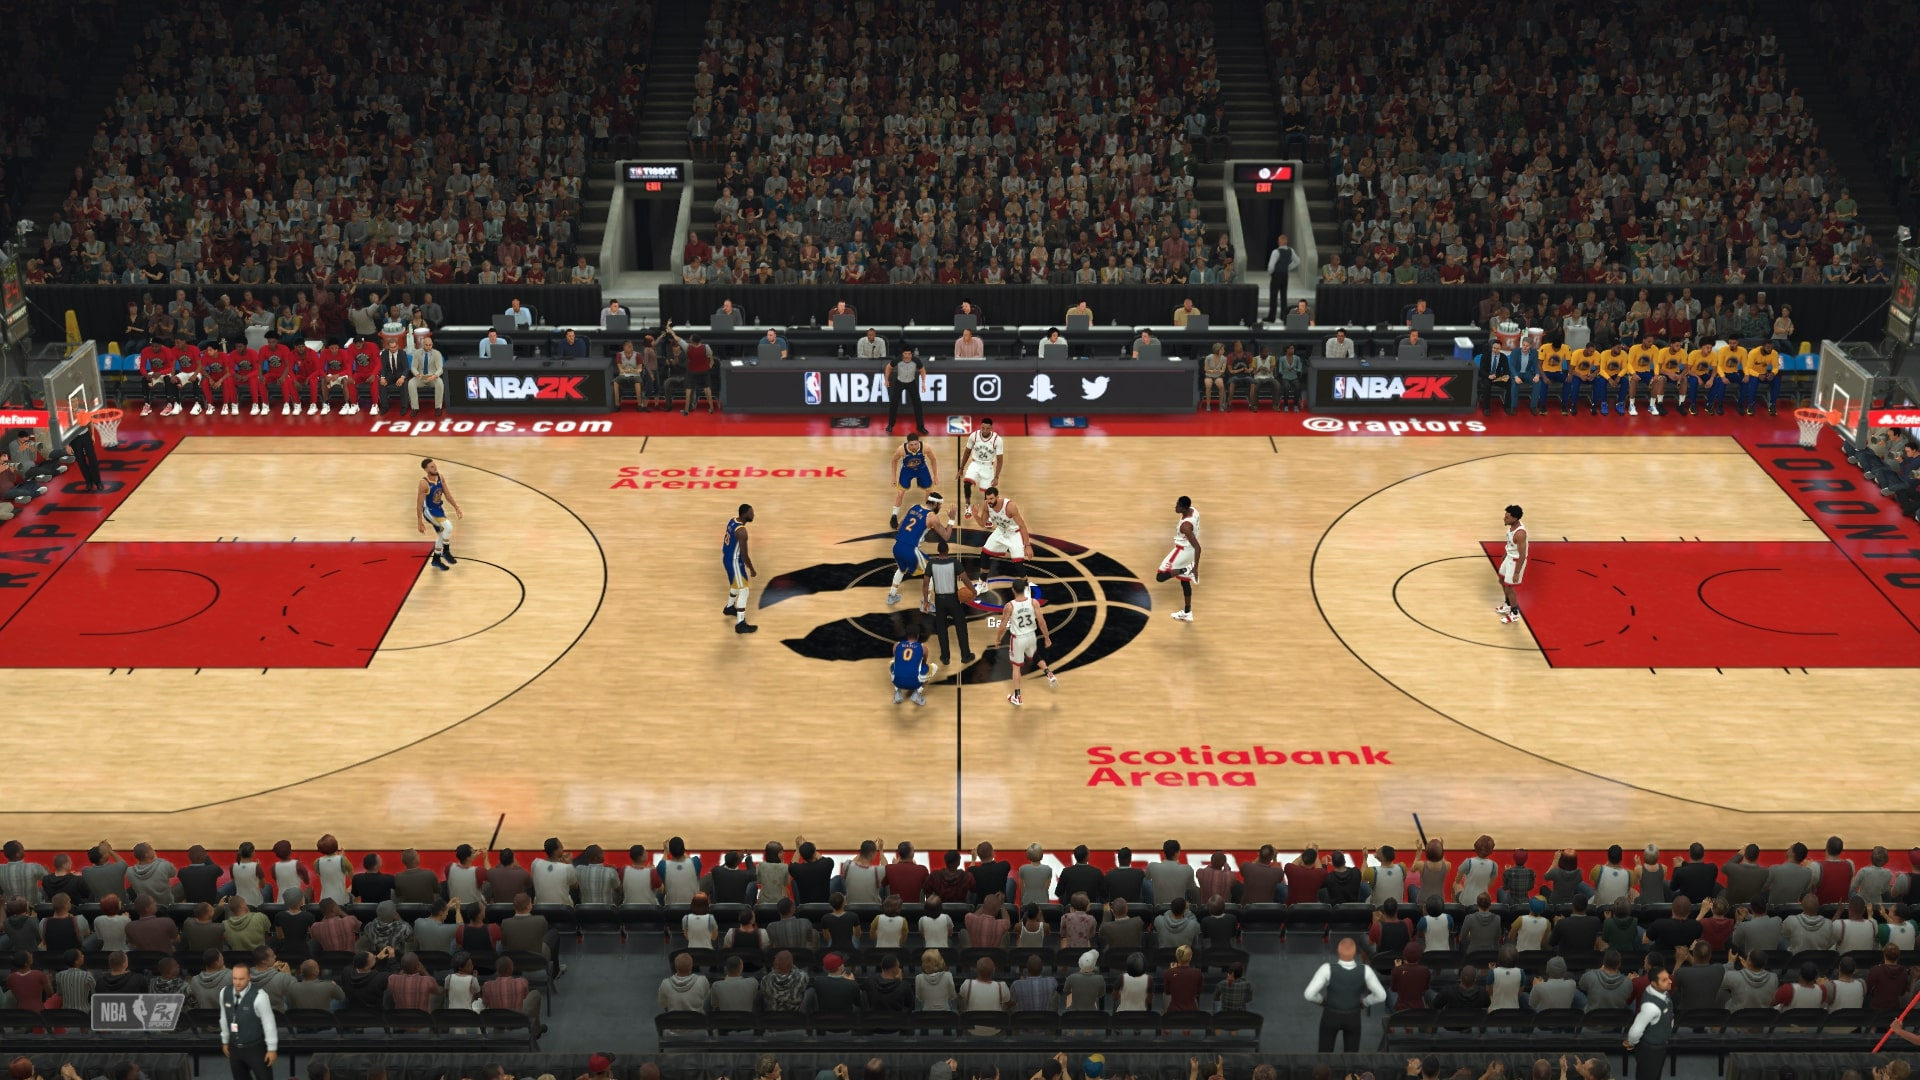 Nba 2k20 Mycareer Tips How To Get Drafted Story Mode Guide Usgamer